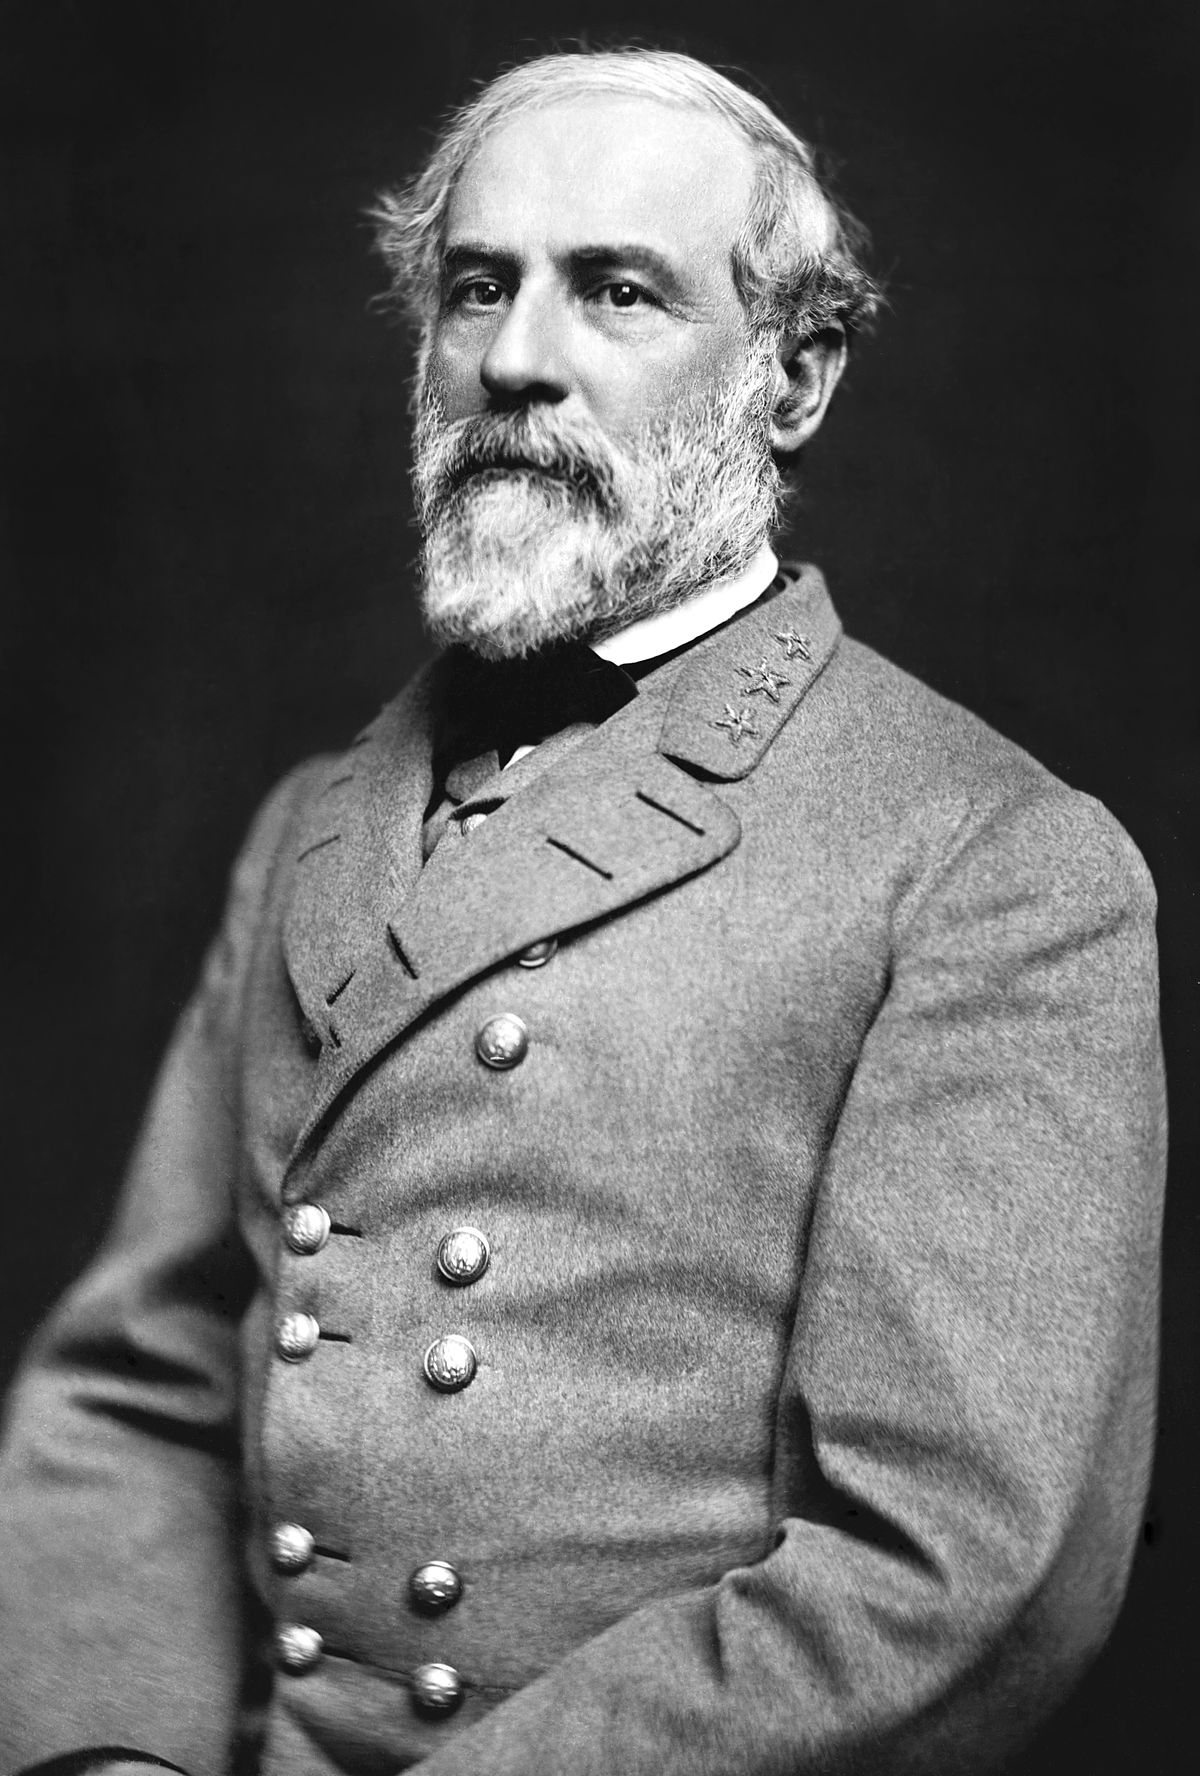 24 Most Famous Robert Edward Lee Photo Picture Image bacl and white photography